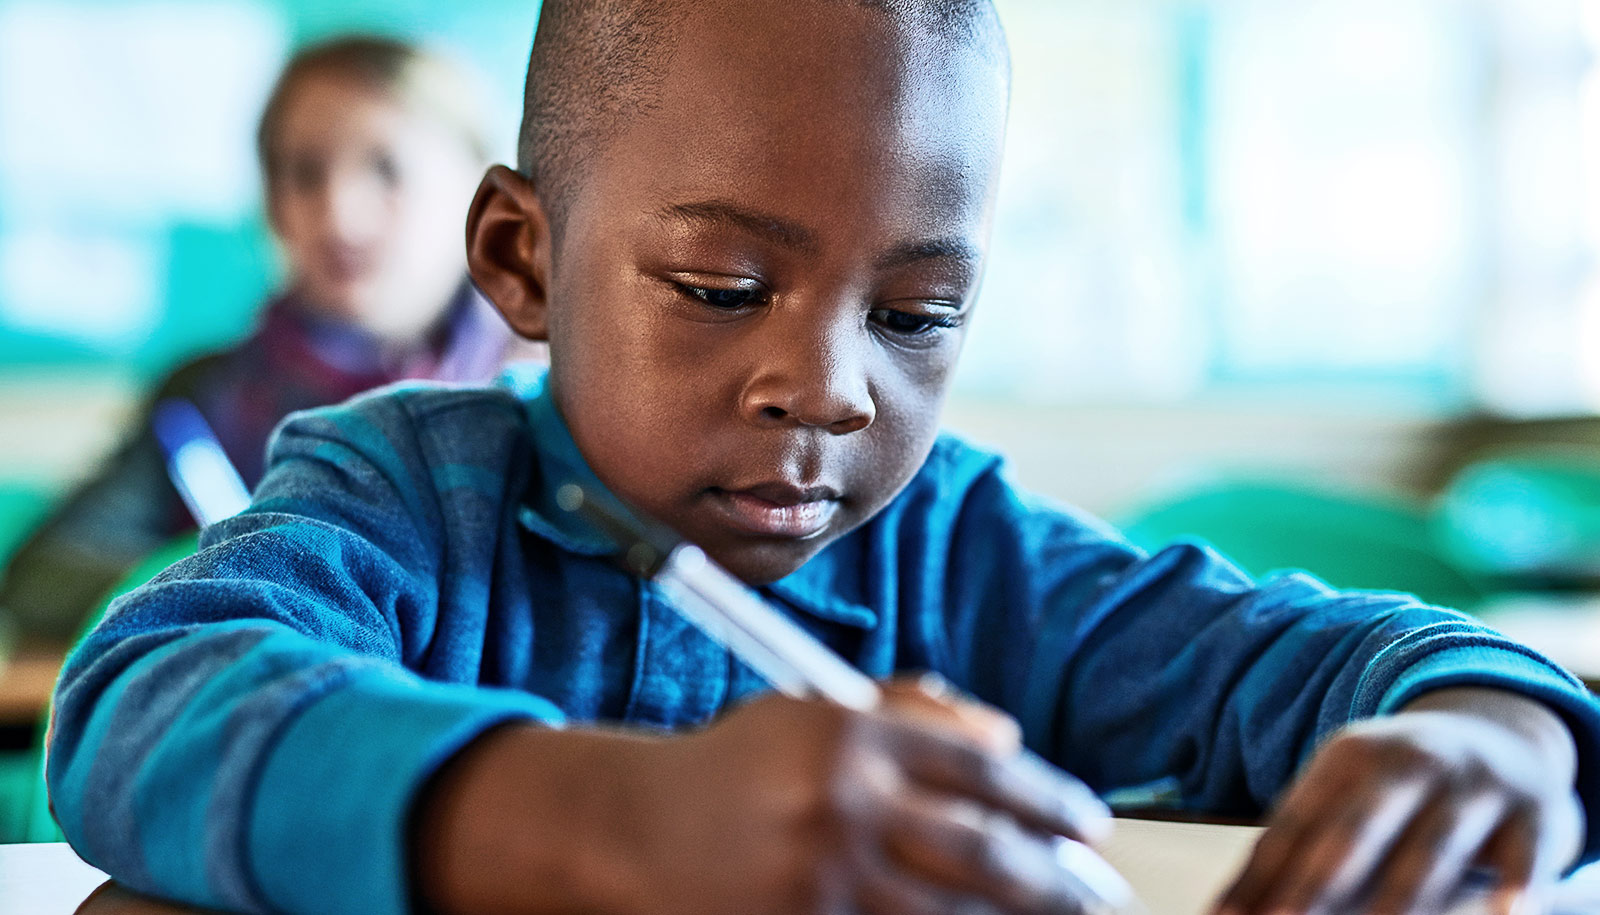 Better criteria for gifted programs can cut racial gaps